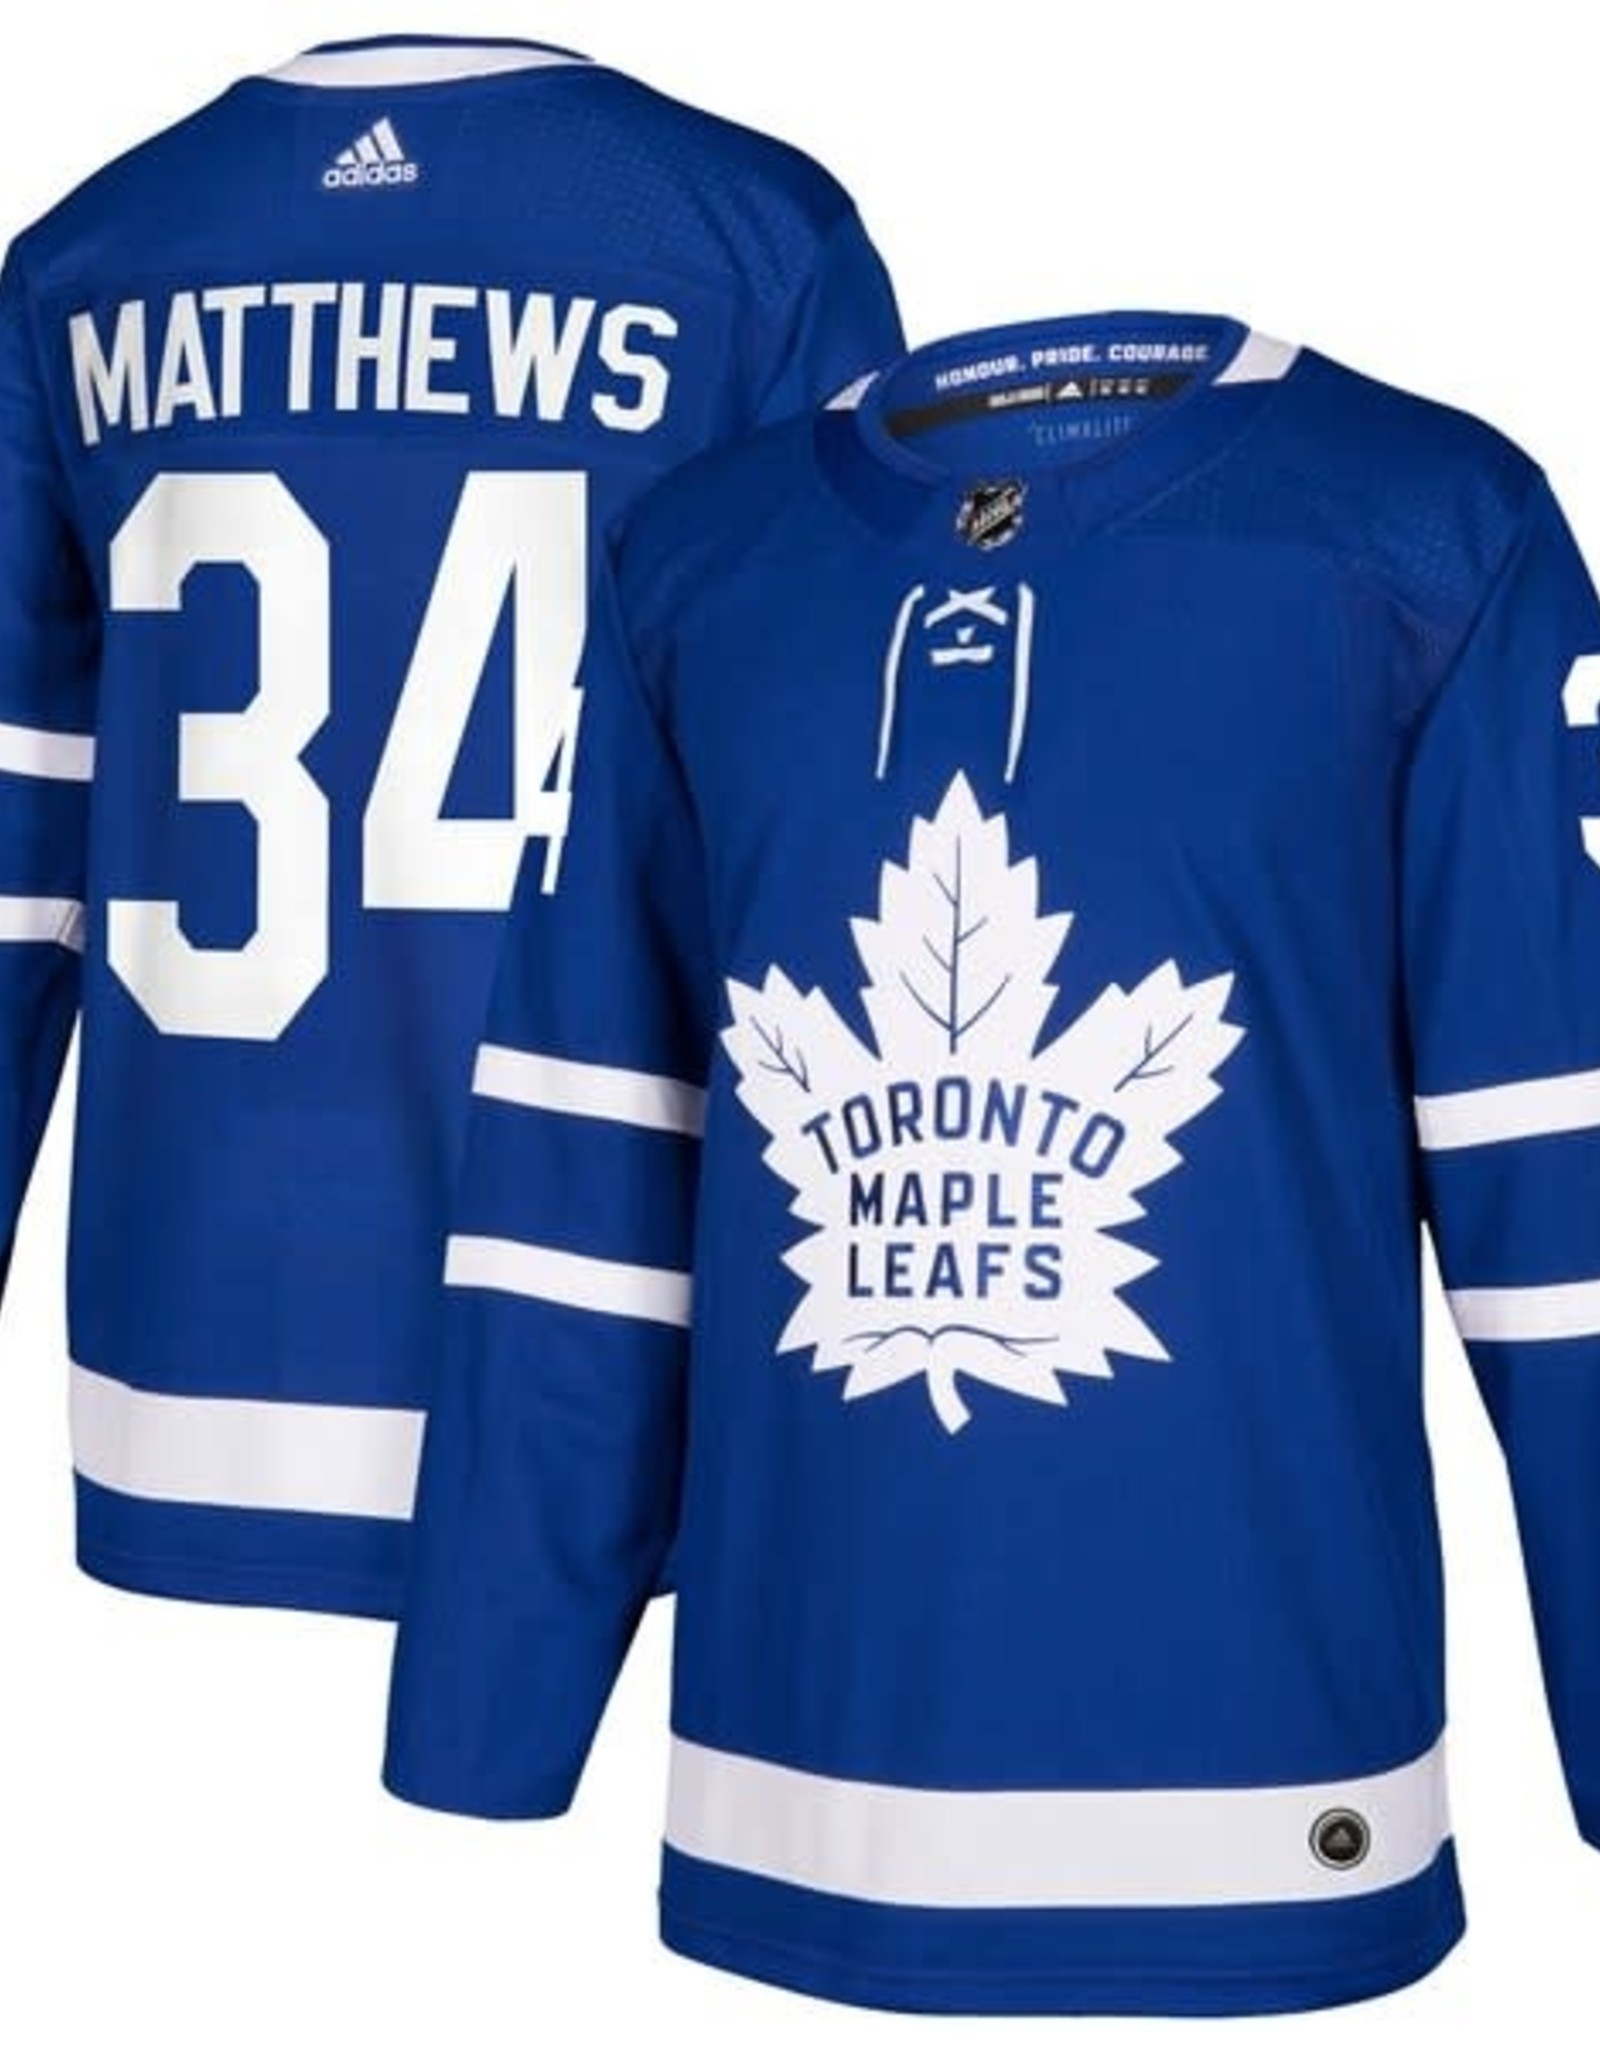 Adidas Adidas Adult Authentic Toronto Maple Leafs Matthews Jersey Blue